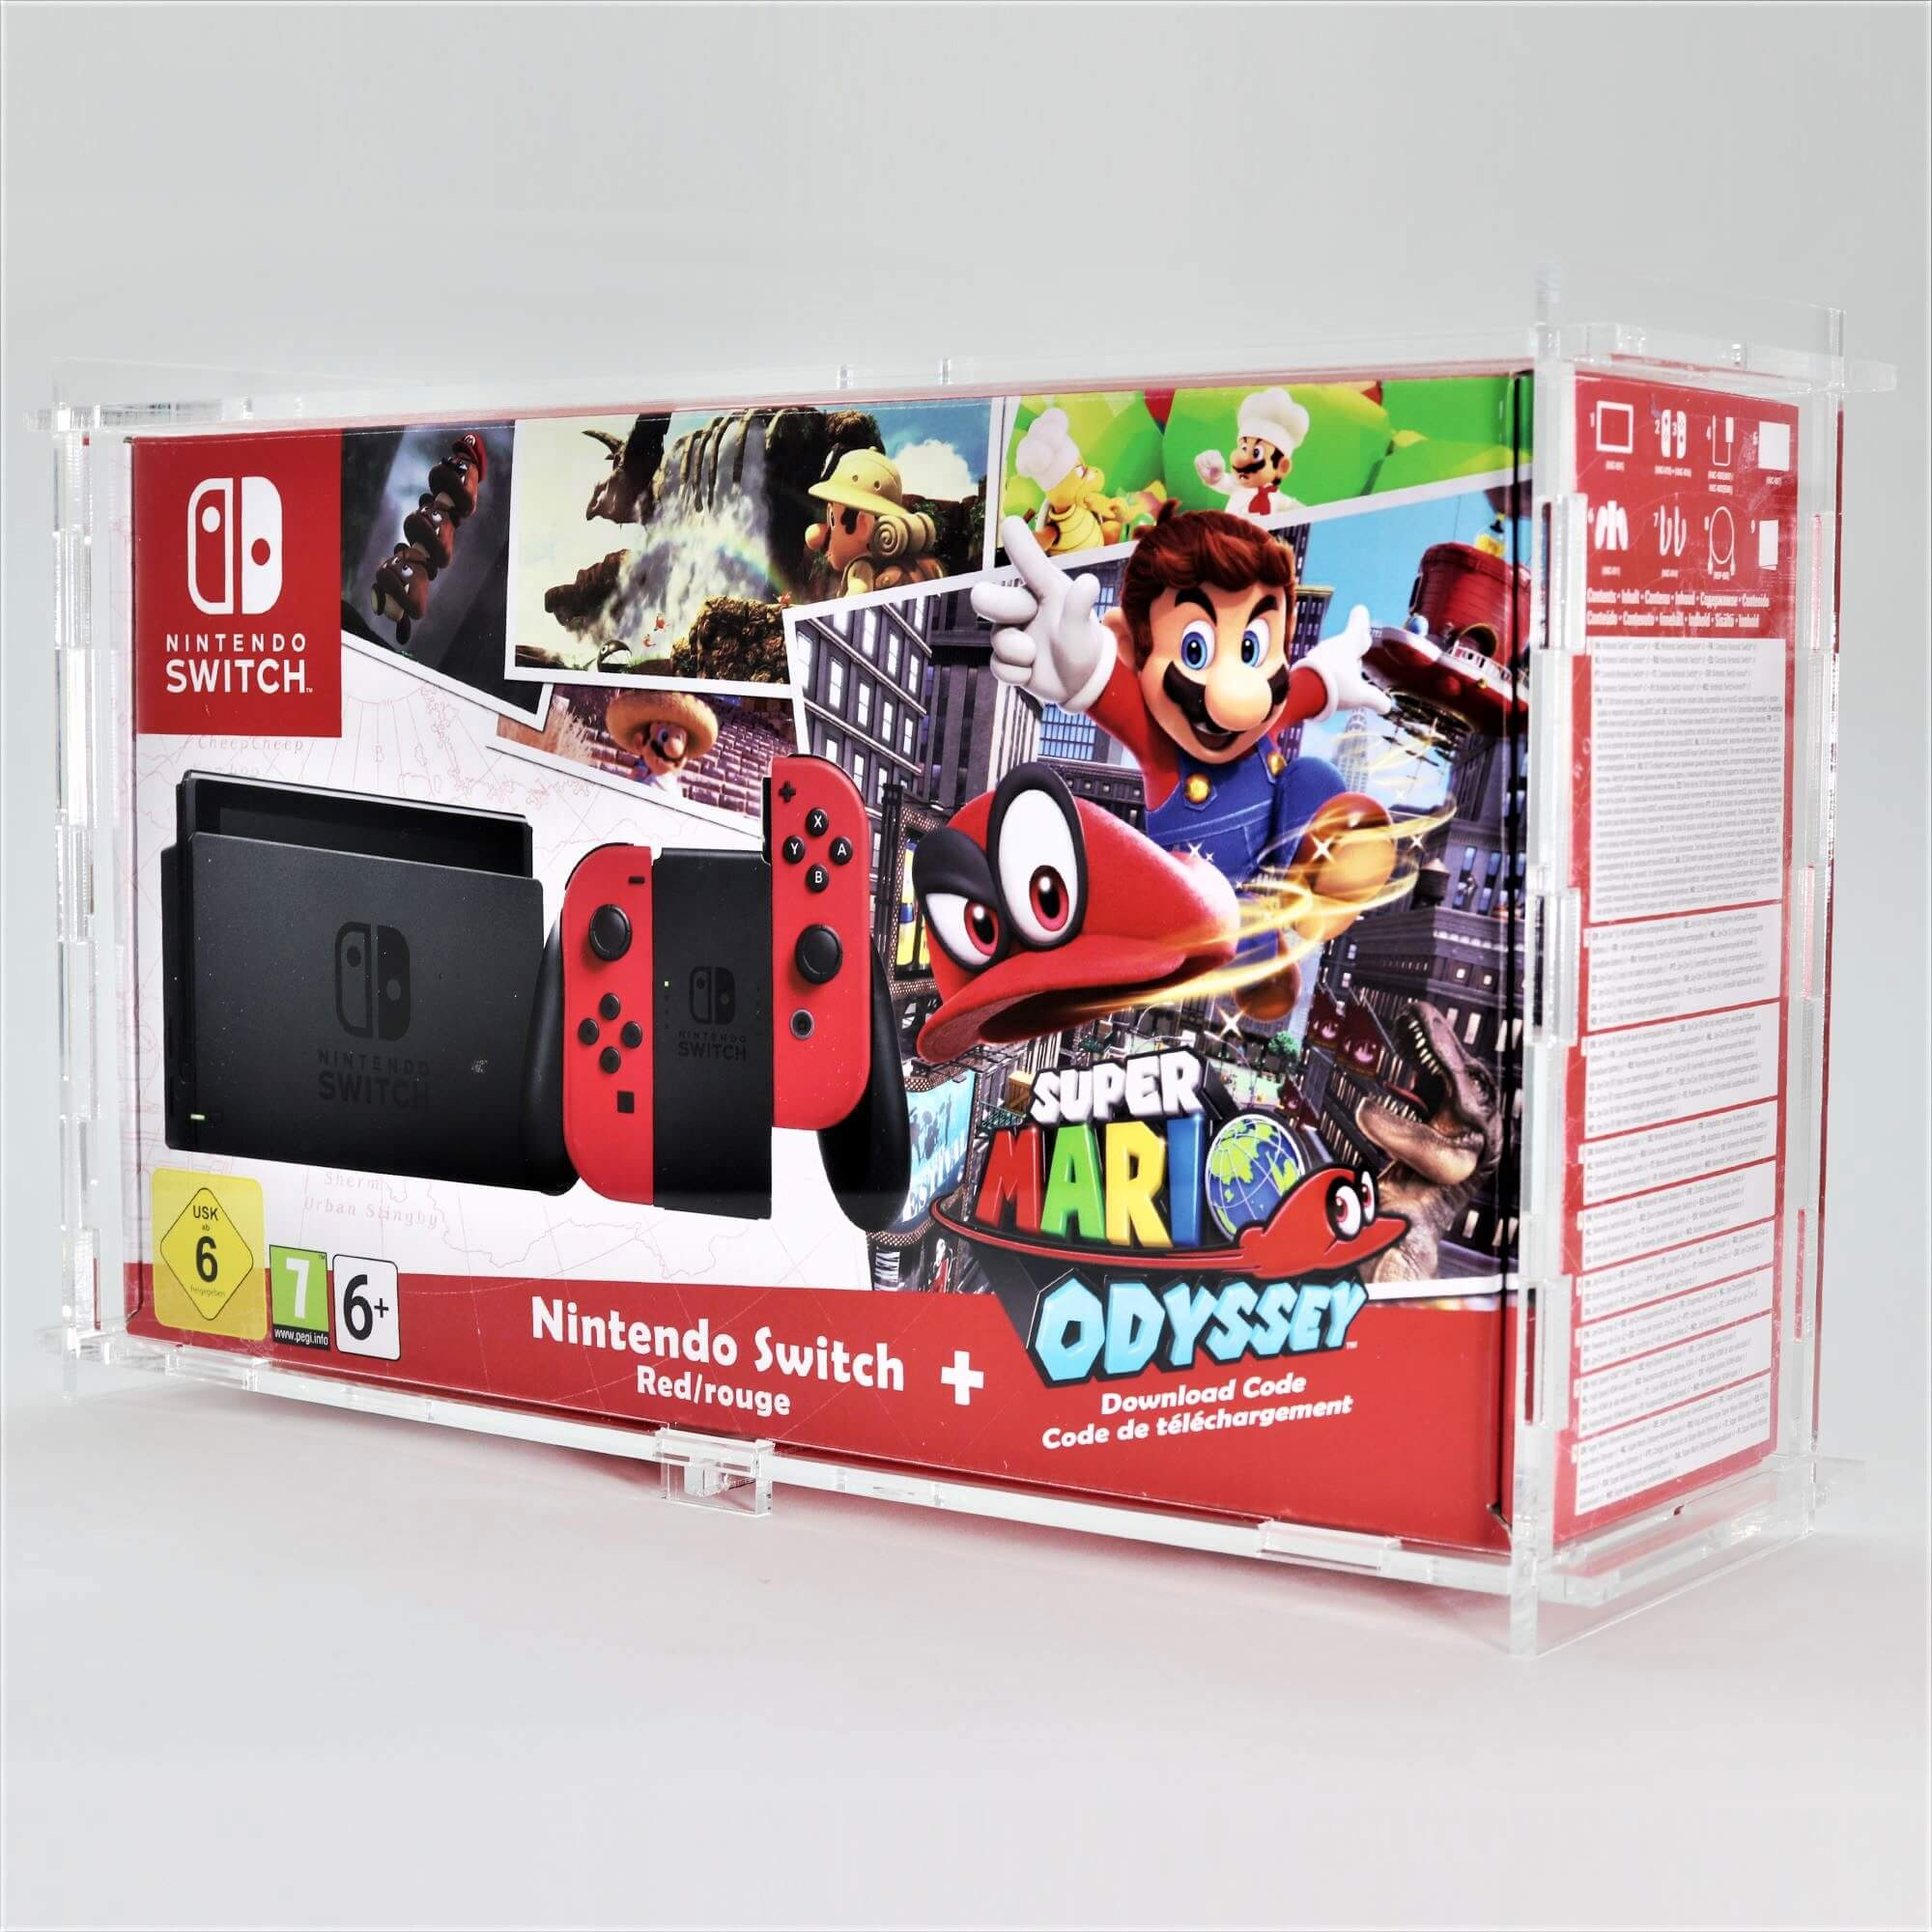 Clear Acrylic Nintendo Switch Boxed Console Display Case